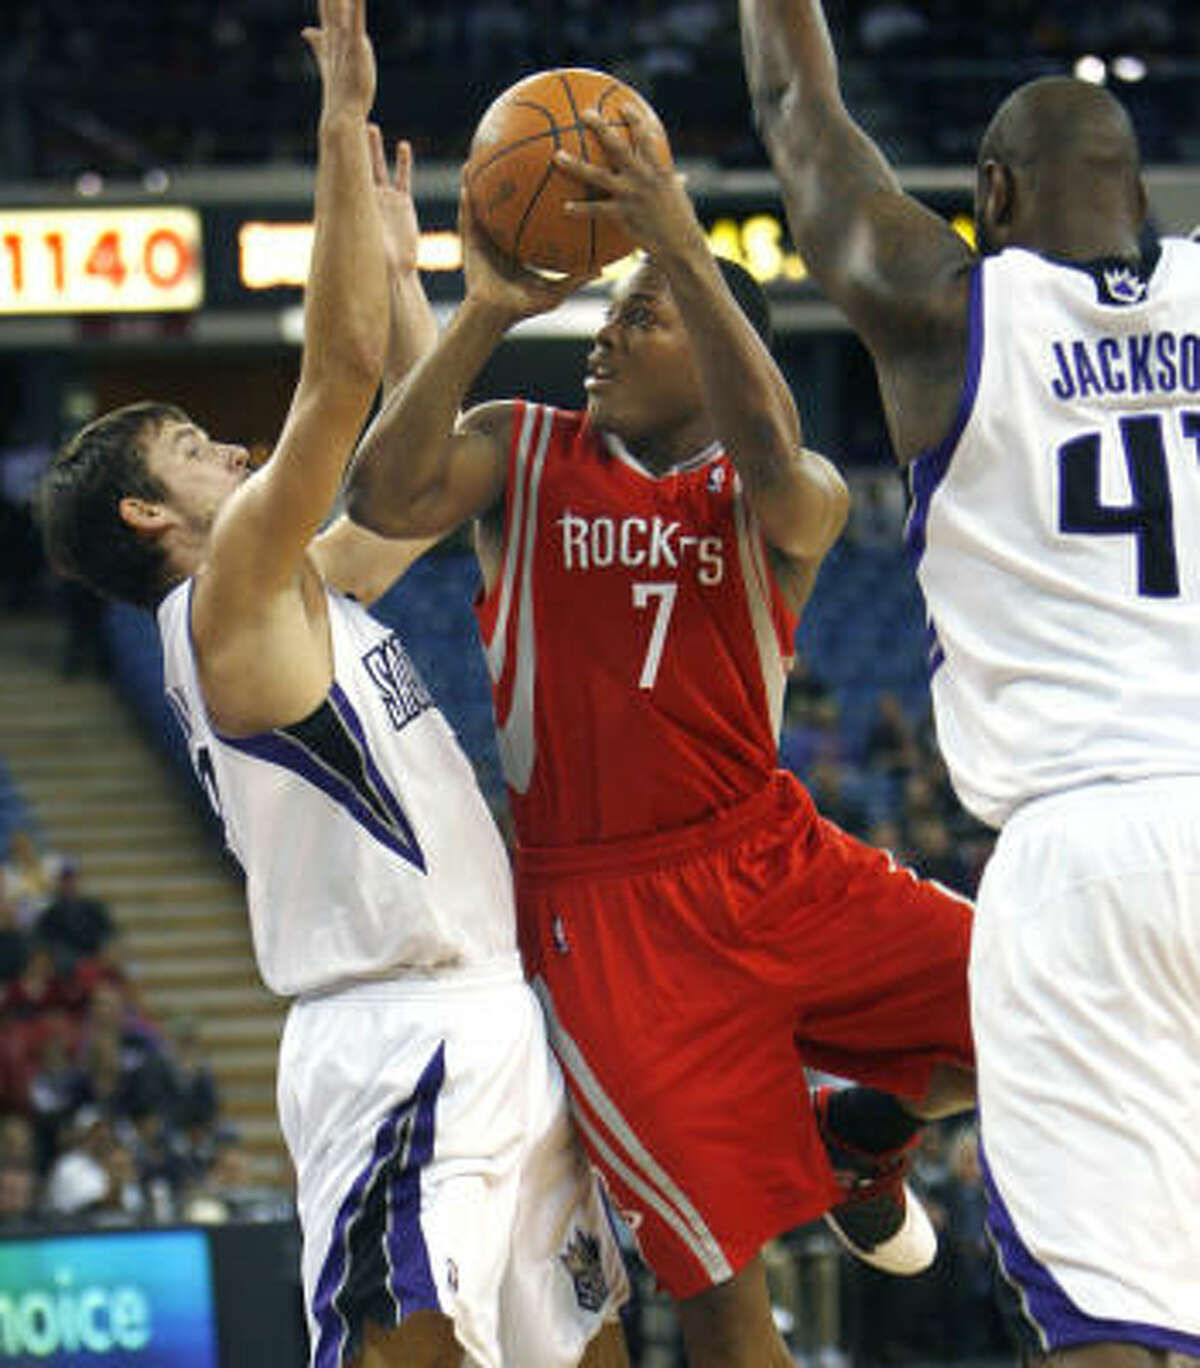 Rockets guard Kyle Lowry puts up a shot against Kings guard Beno Udrih, left, during the first half on Sunday night.